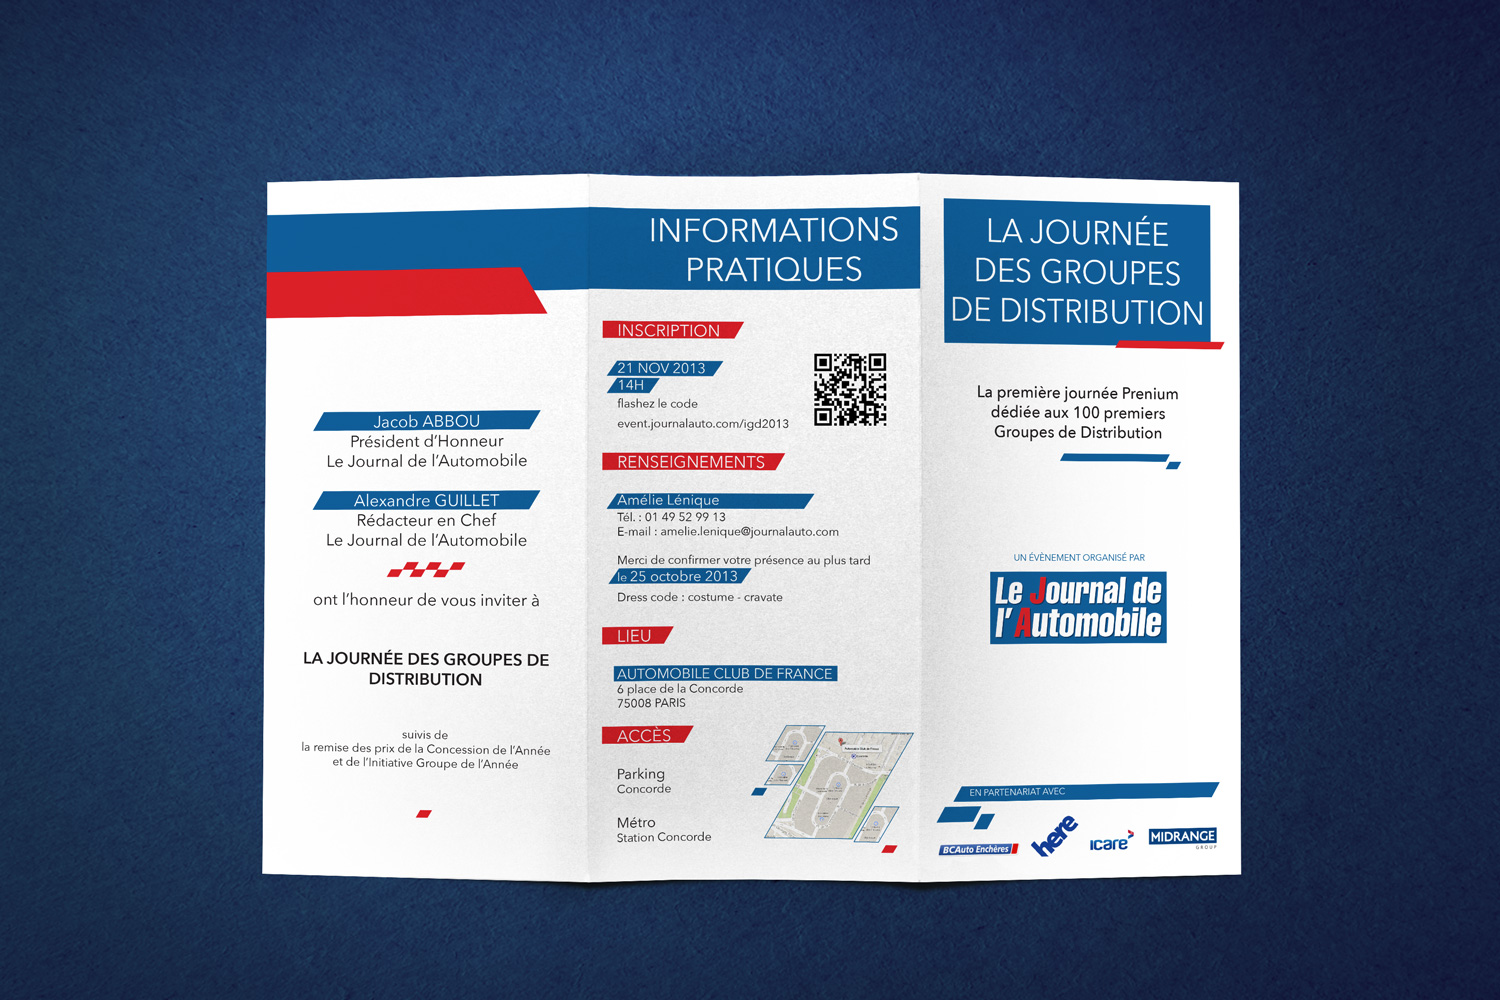 depliant-journal-automobile-journee-des-groupes-de-distribution-03